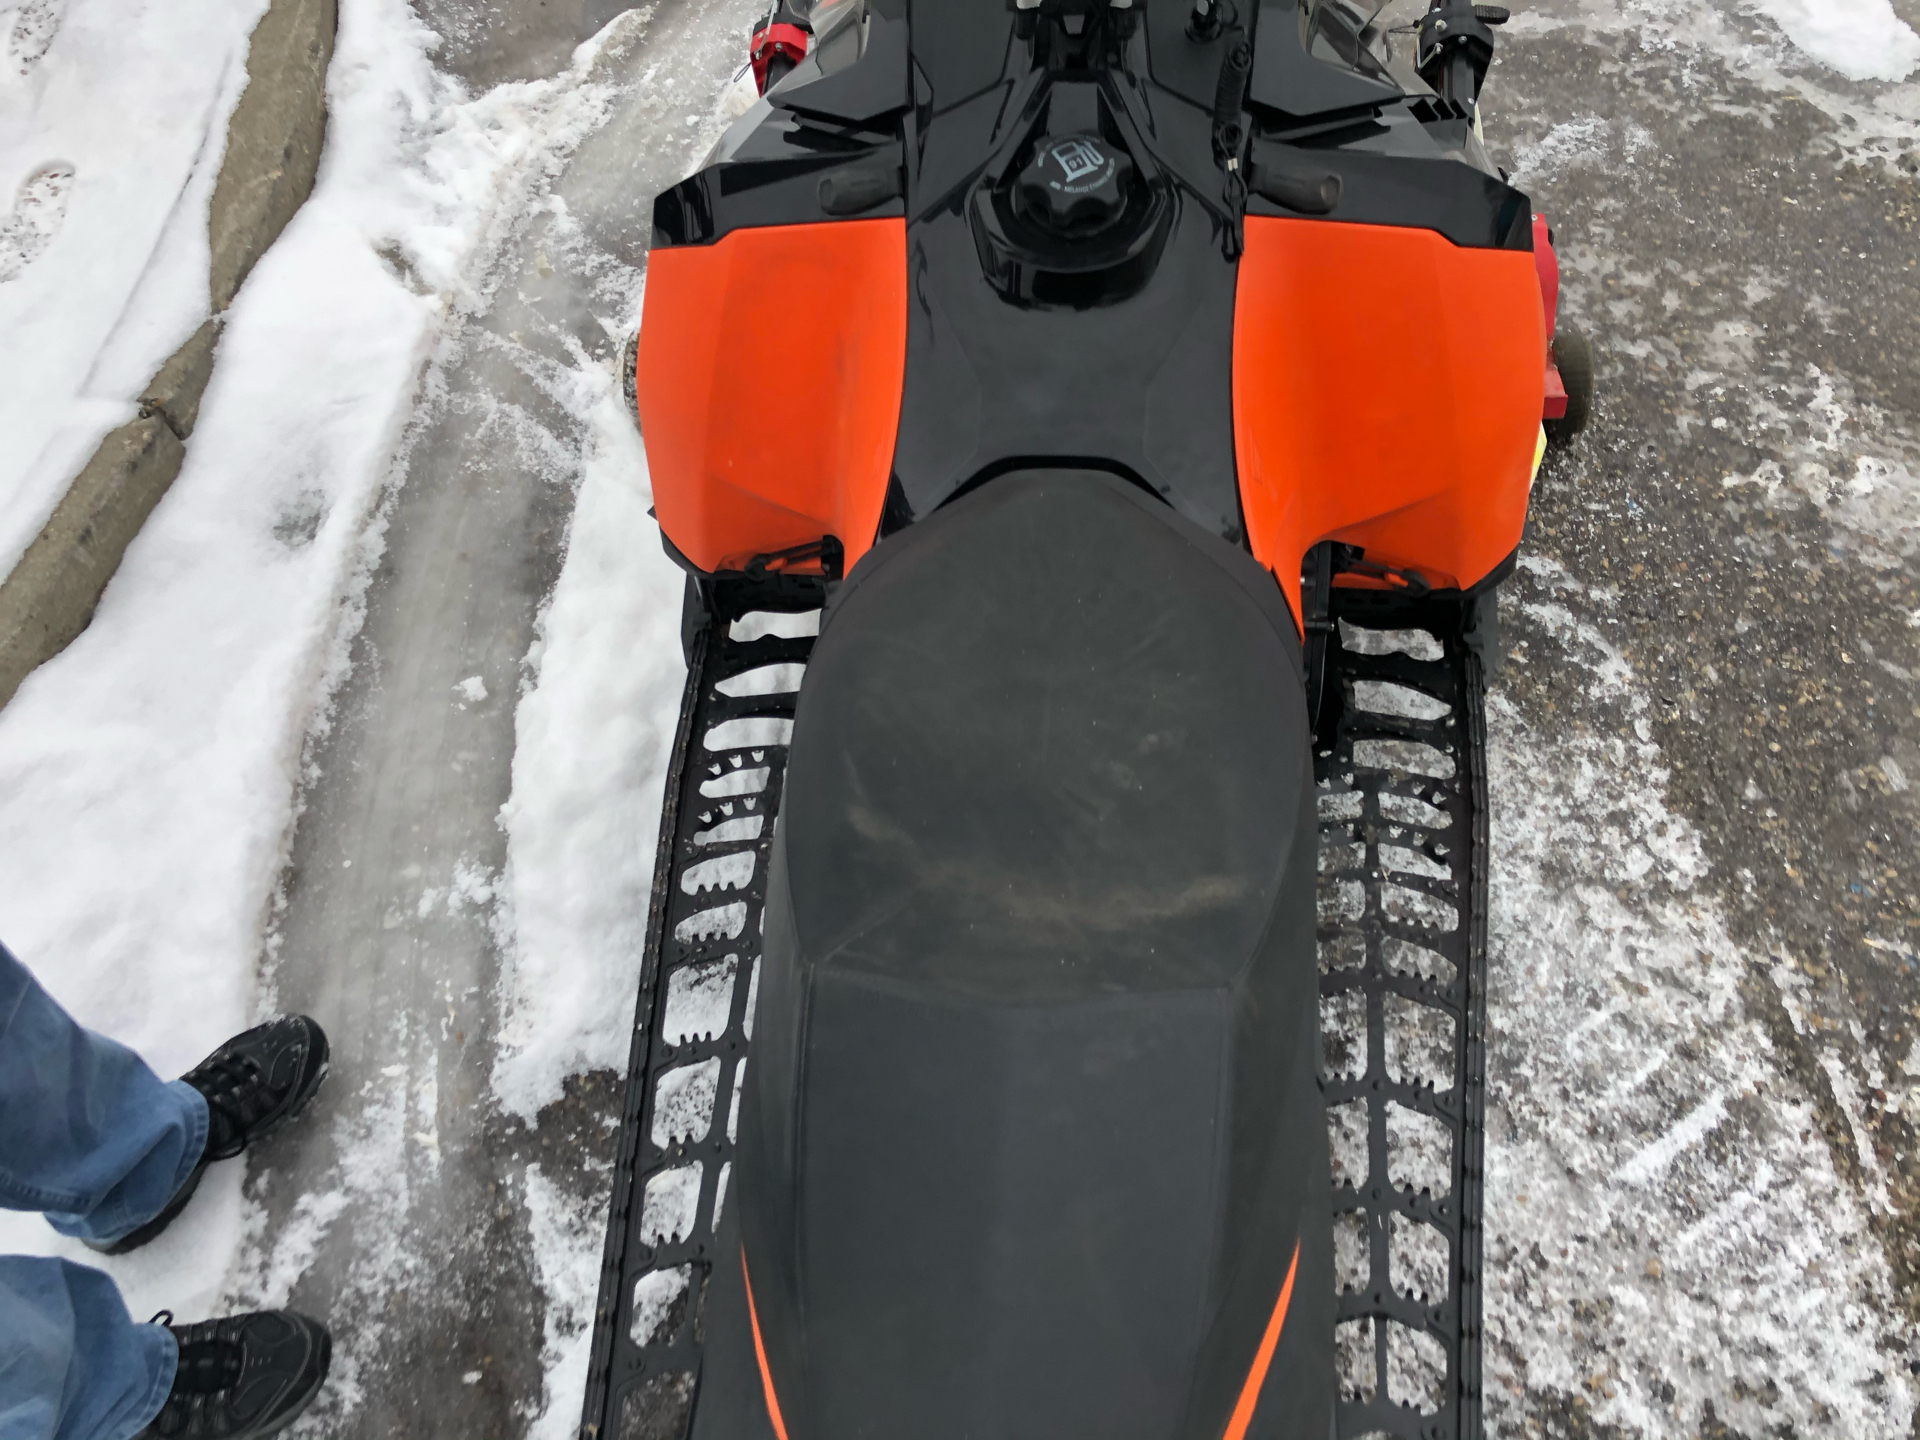 2016 Ski-Doo Renegade Backcountry 800R E-TEC in Bismarck, North Dakota - Photo 7